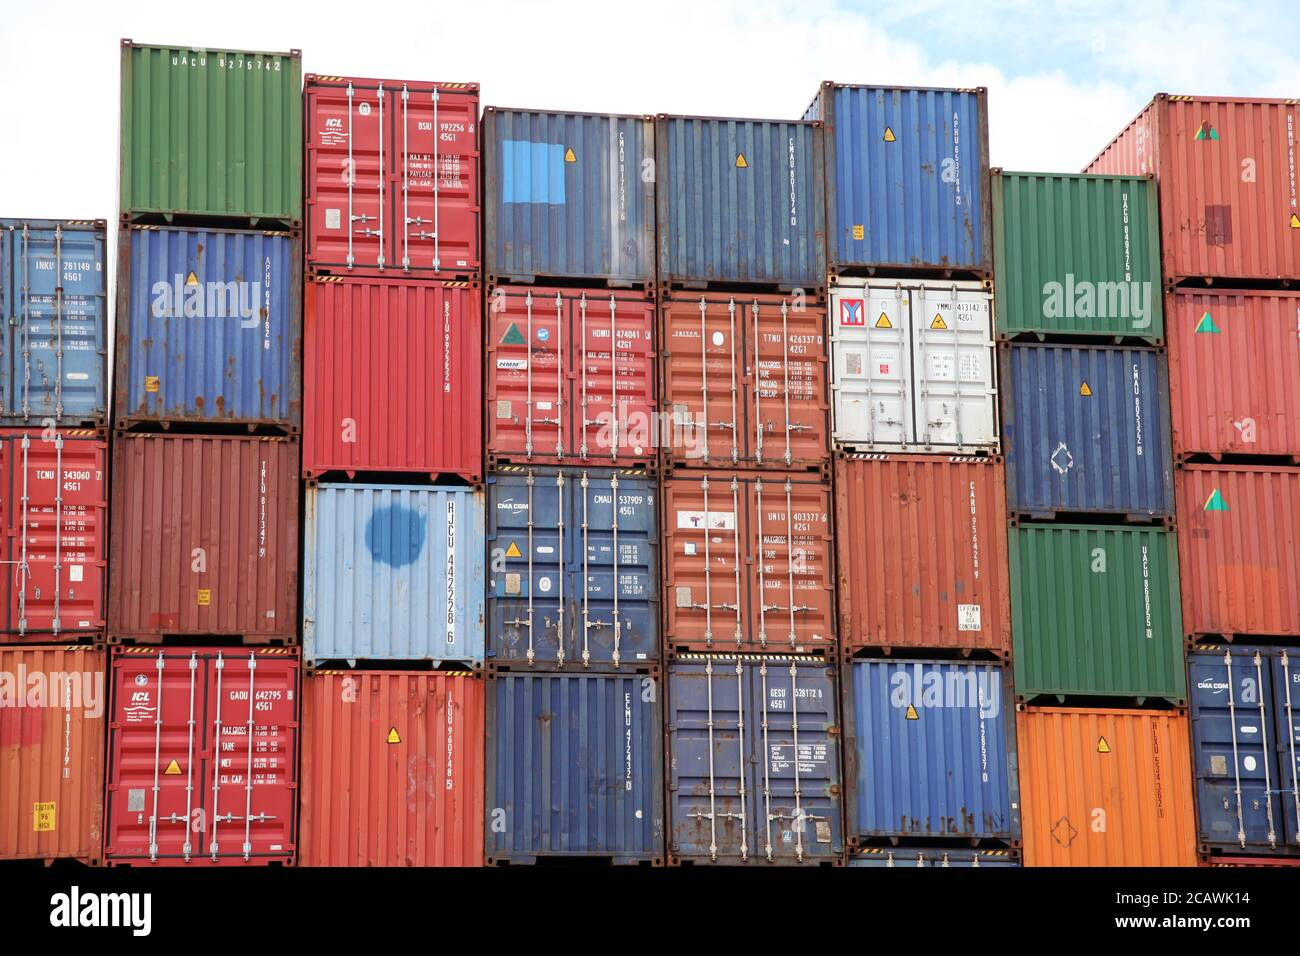 Southampton Port Shipping Containers stacked, Dock Gate 10, Southern Road, Southampton, England, UK, August 2020 Stock Photo